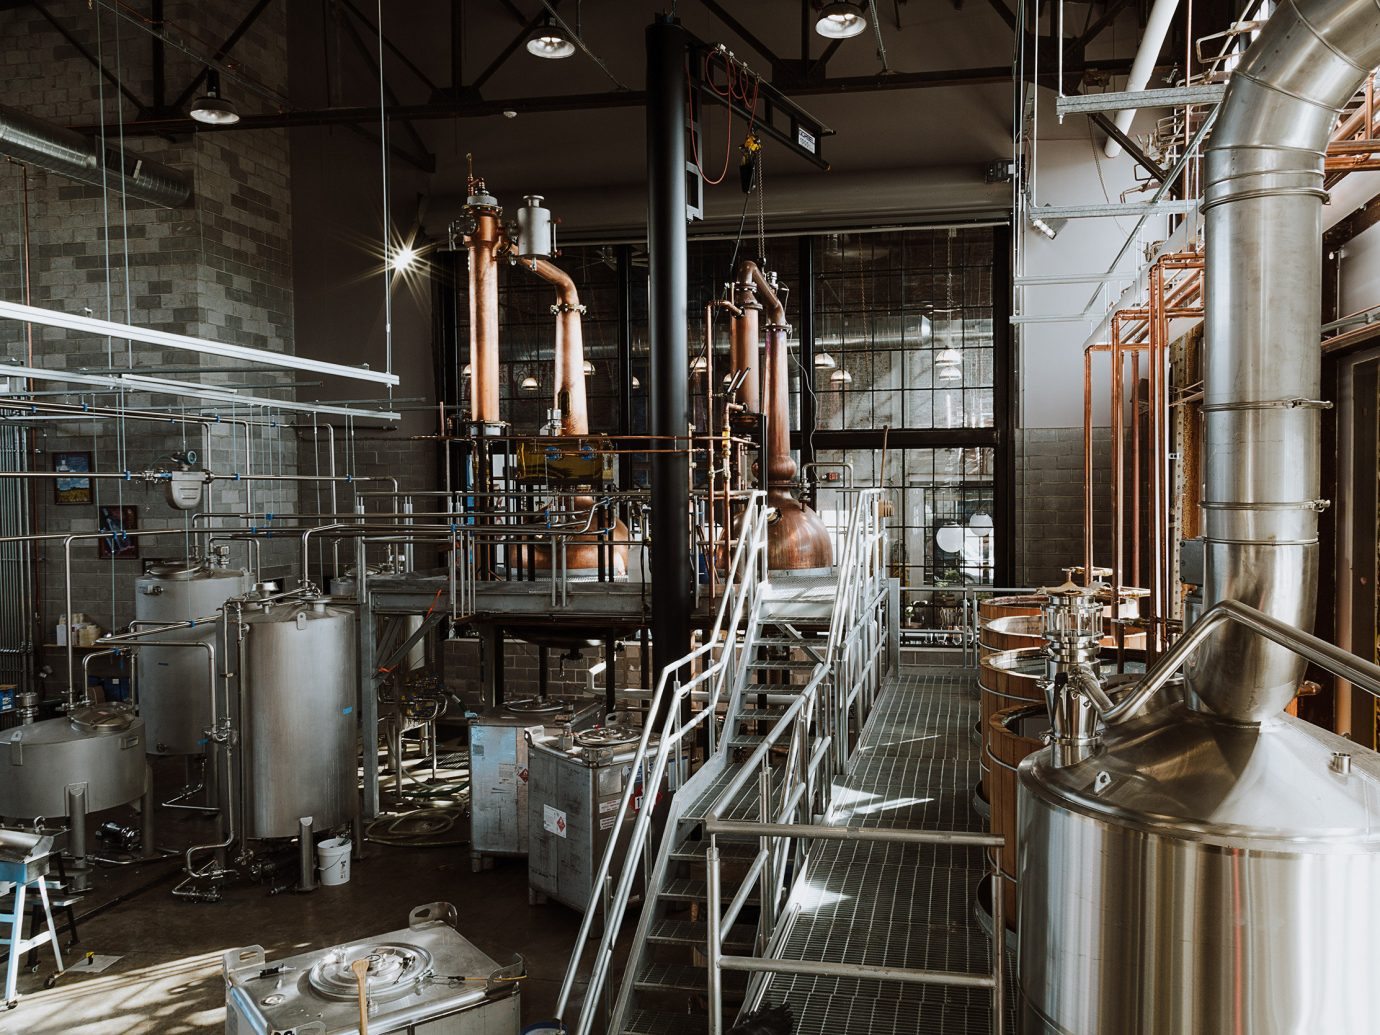 Food + Drink indoor brewery industry metal factory cooking